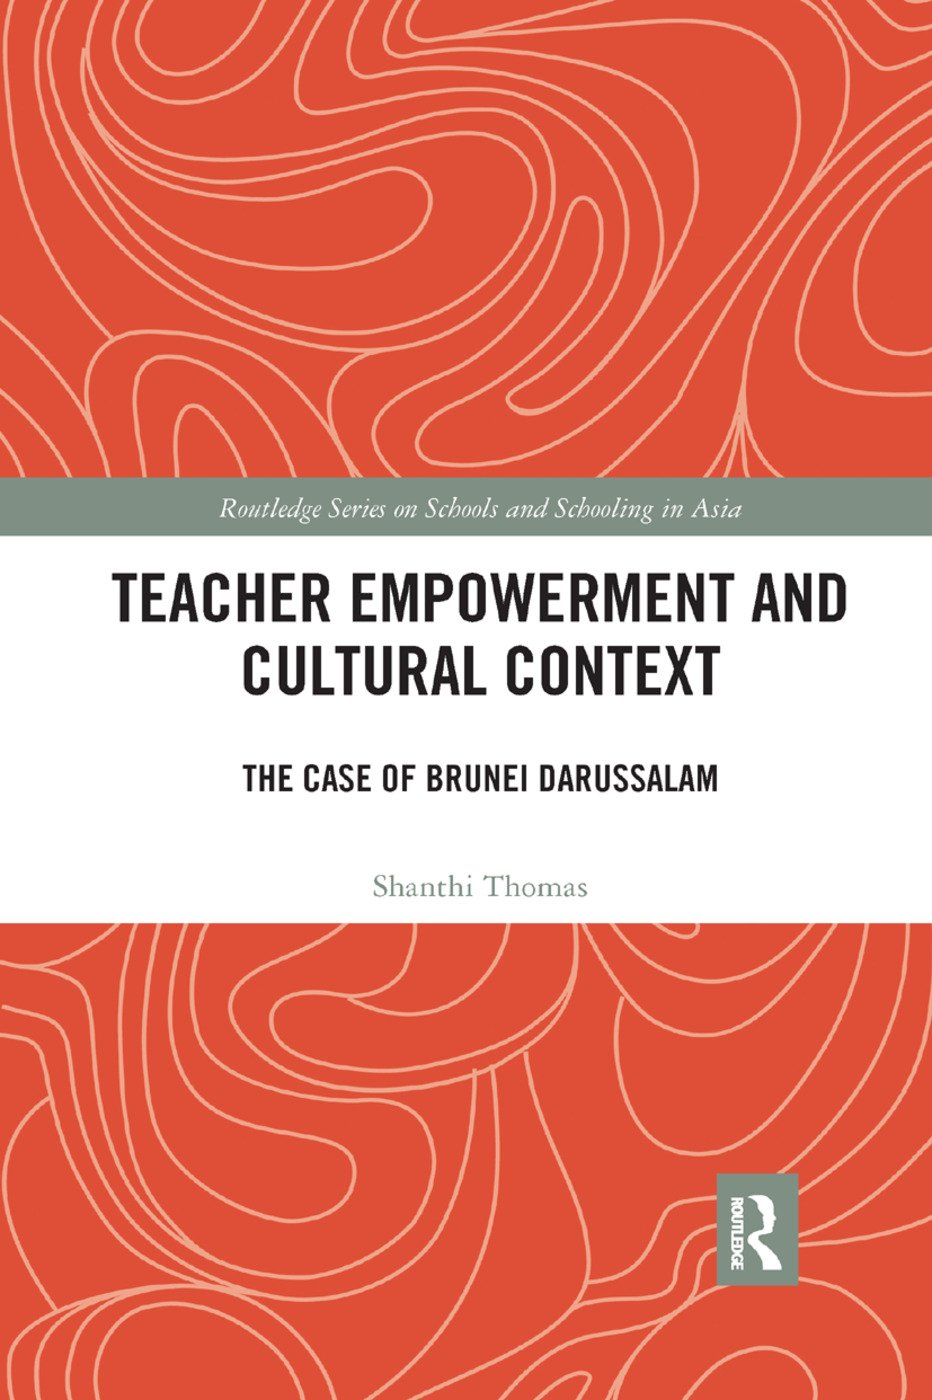 Teacher Empowerment and Cultural Context: The Case of Brunei Darussalam book cover